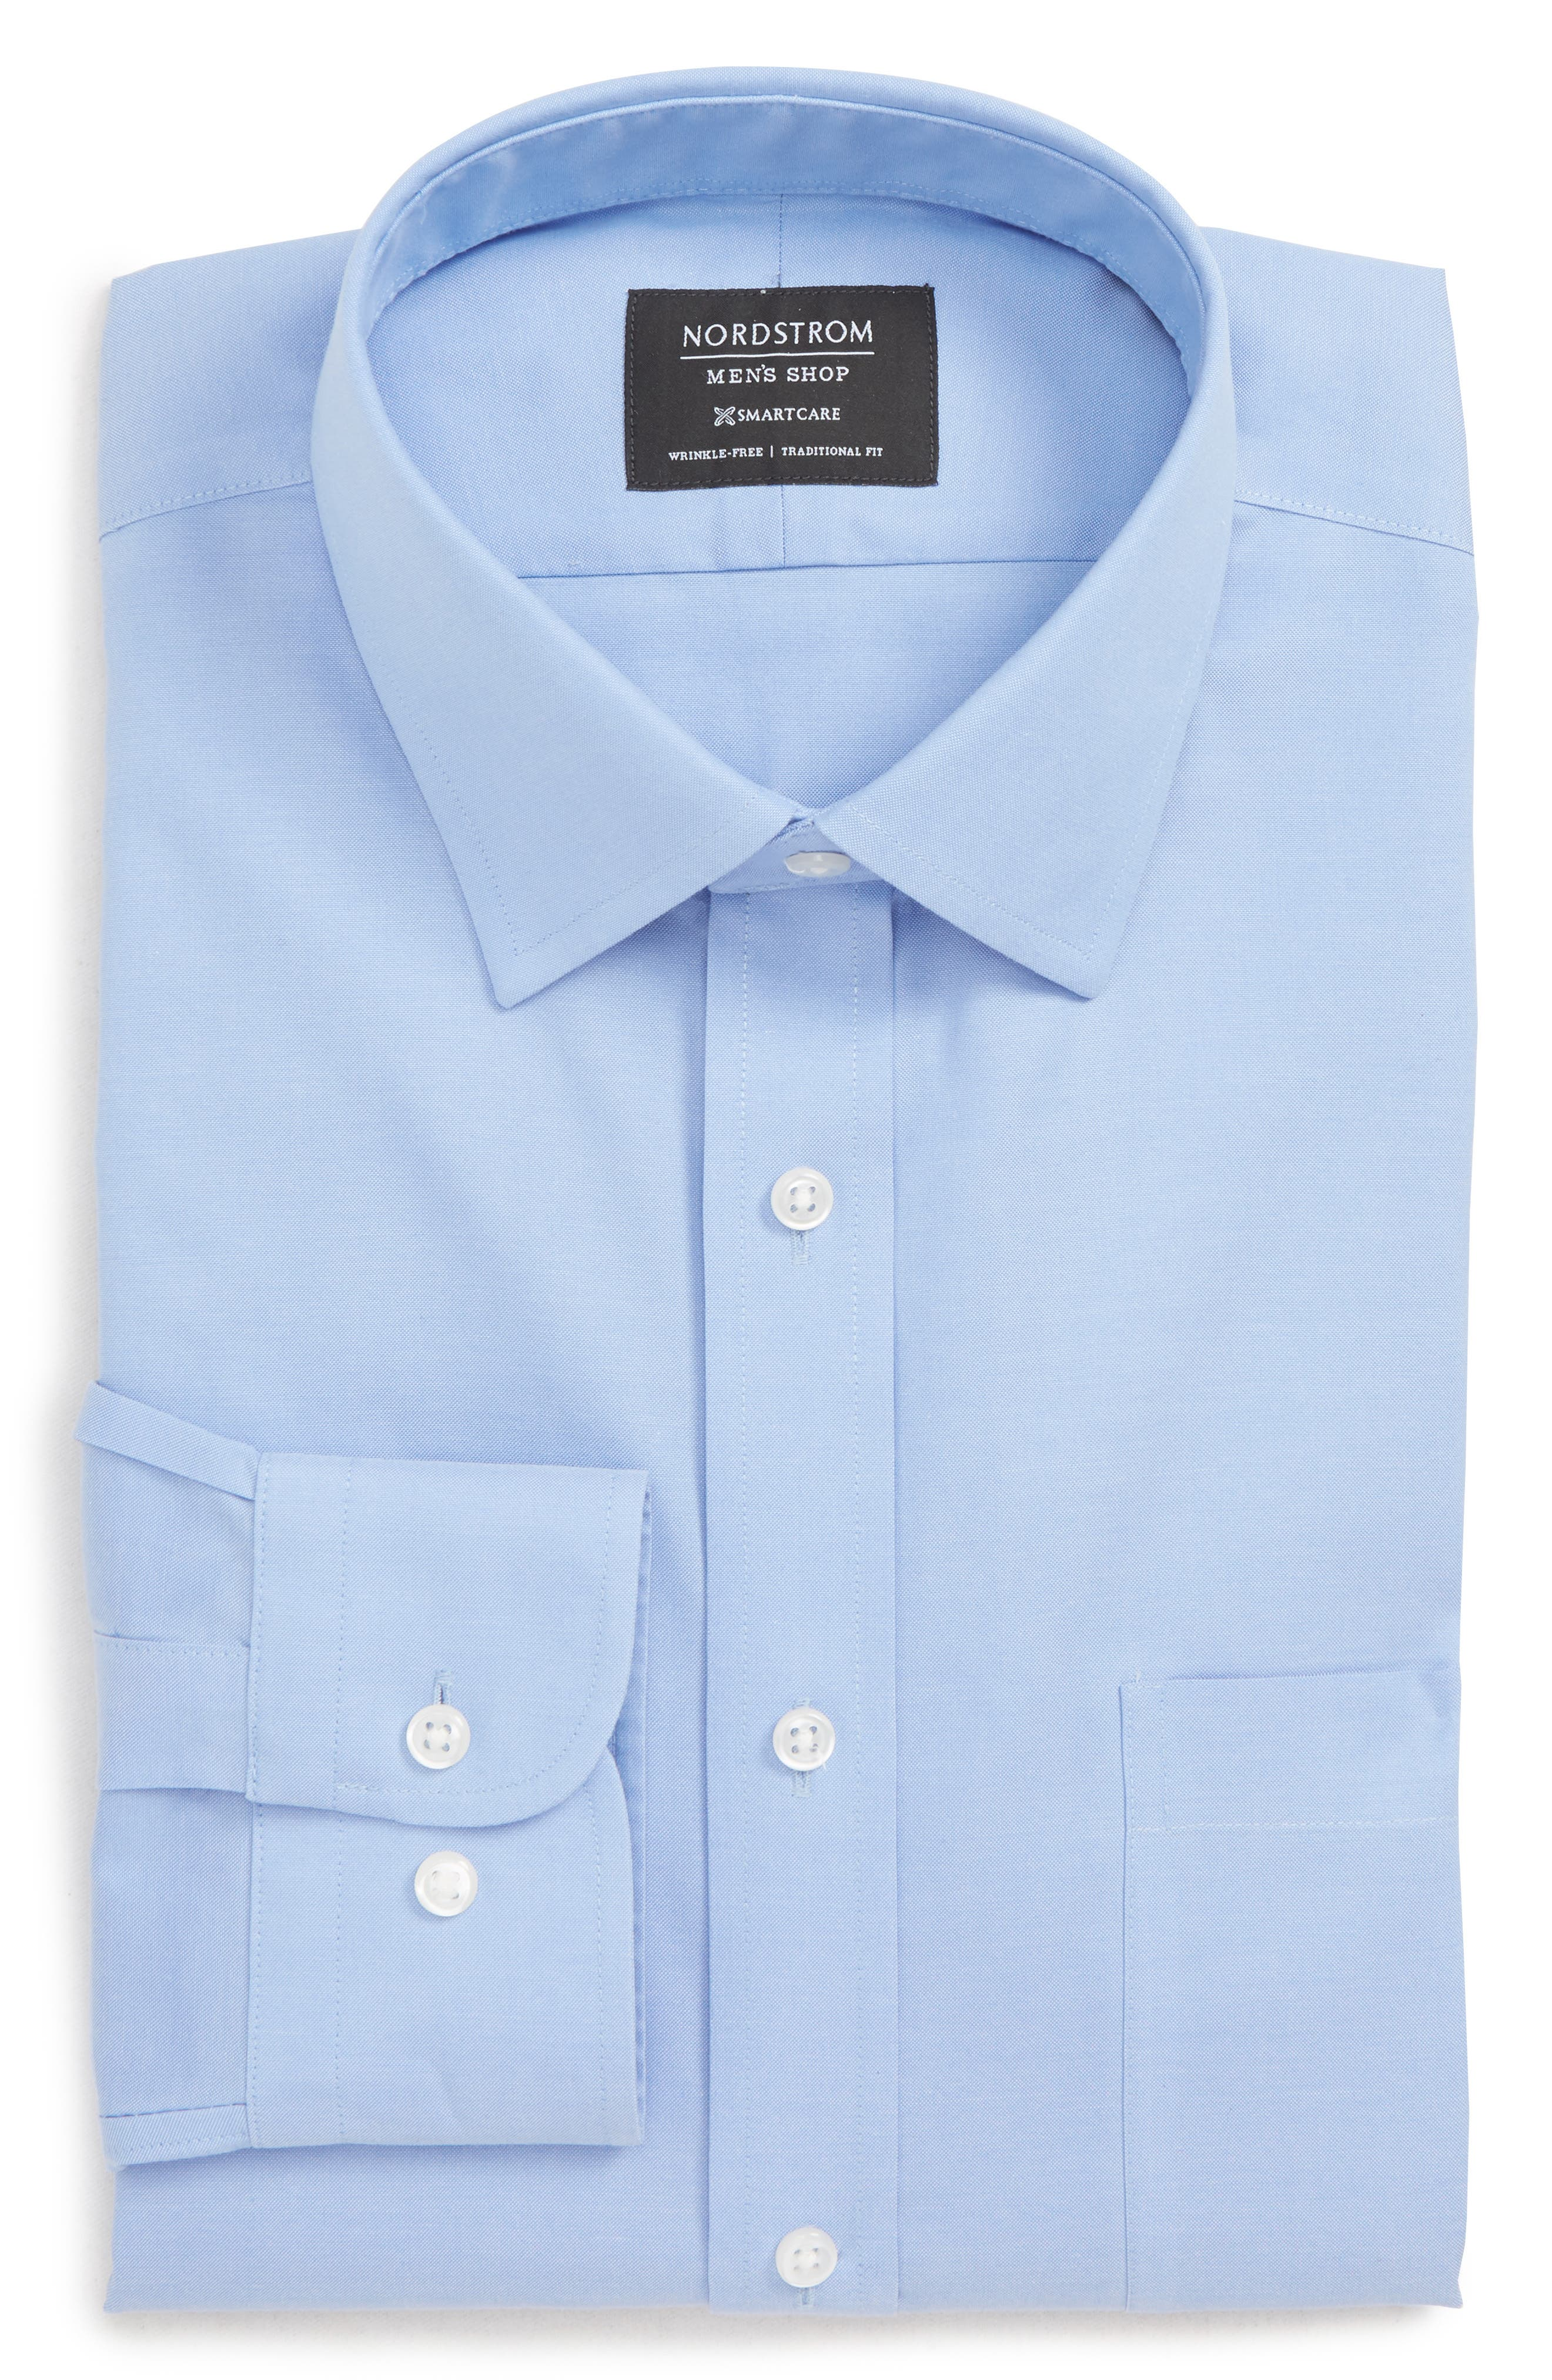 Nordstrom Shop Smartcare(TM) Traditional Fit Dress Shirt - Blue